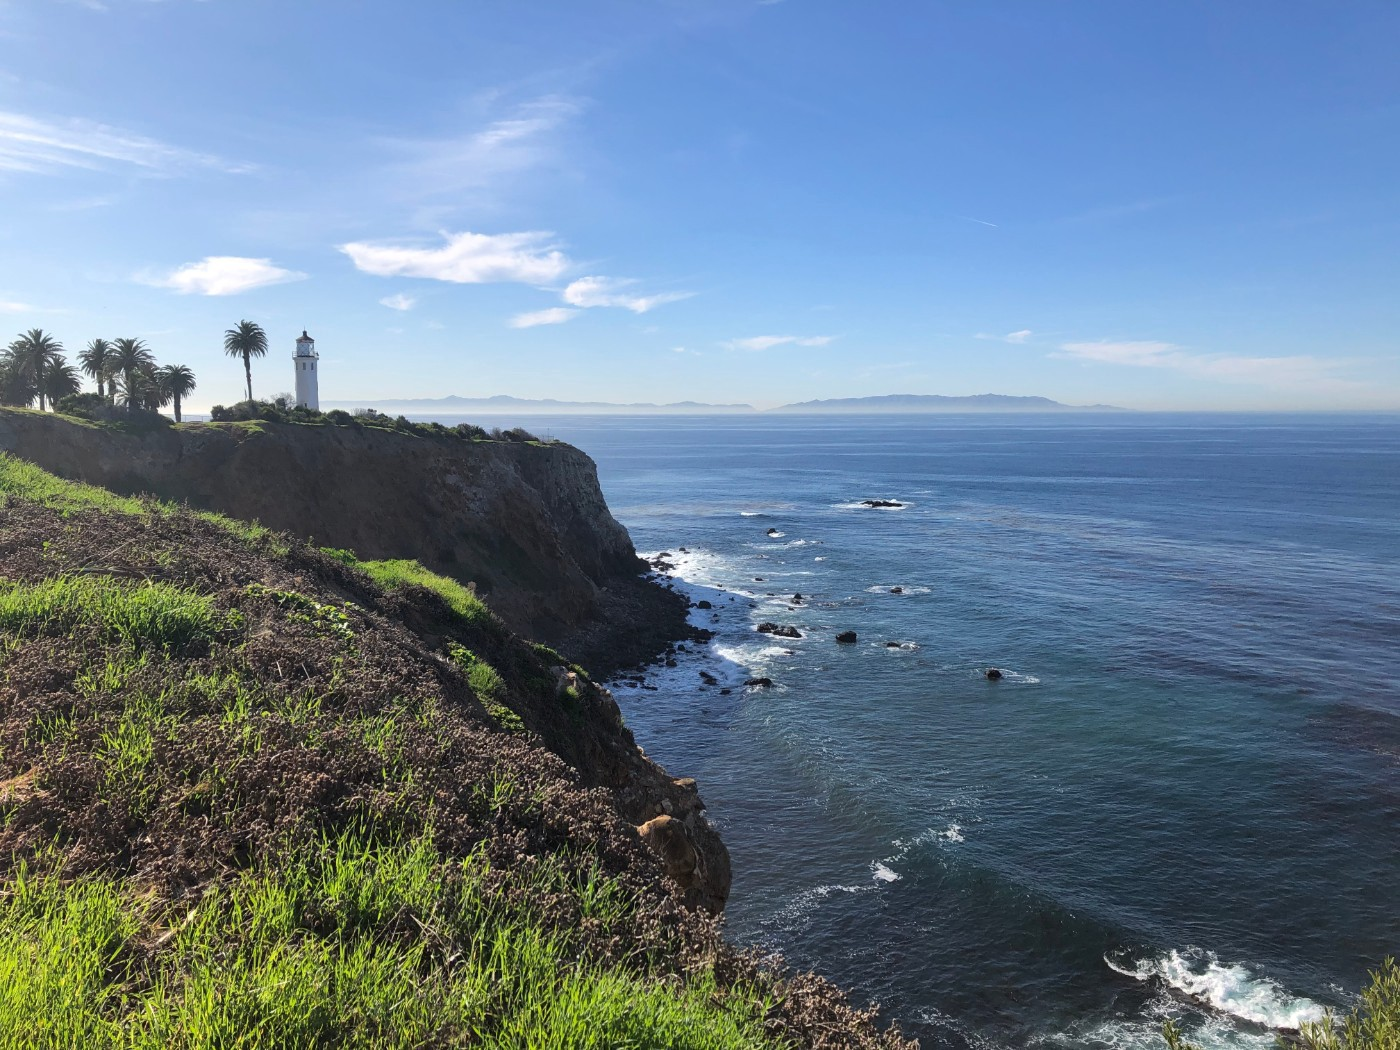 A lighthouse overlooking the Pacific Ocean (Point Vicente, Rancho Palos Verdes, California).